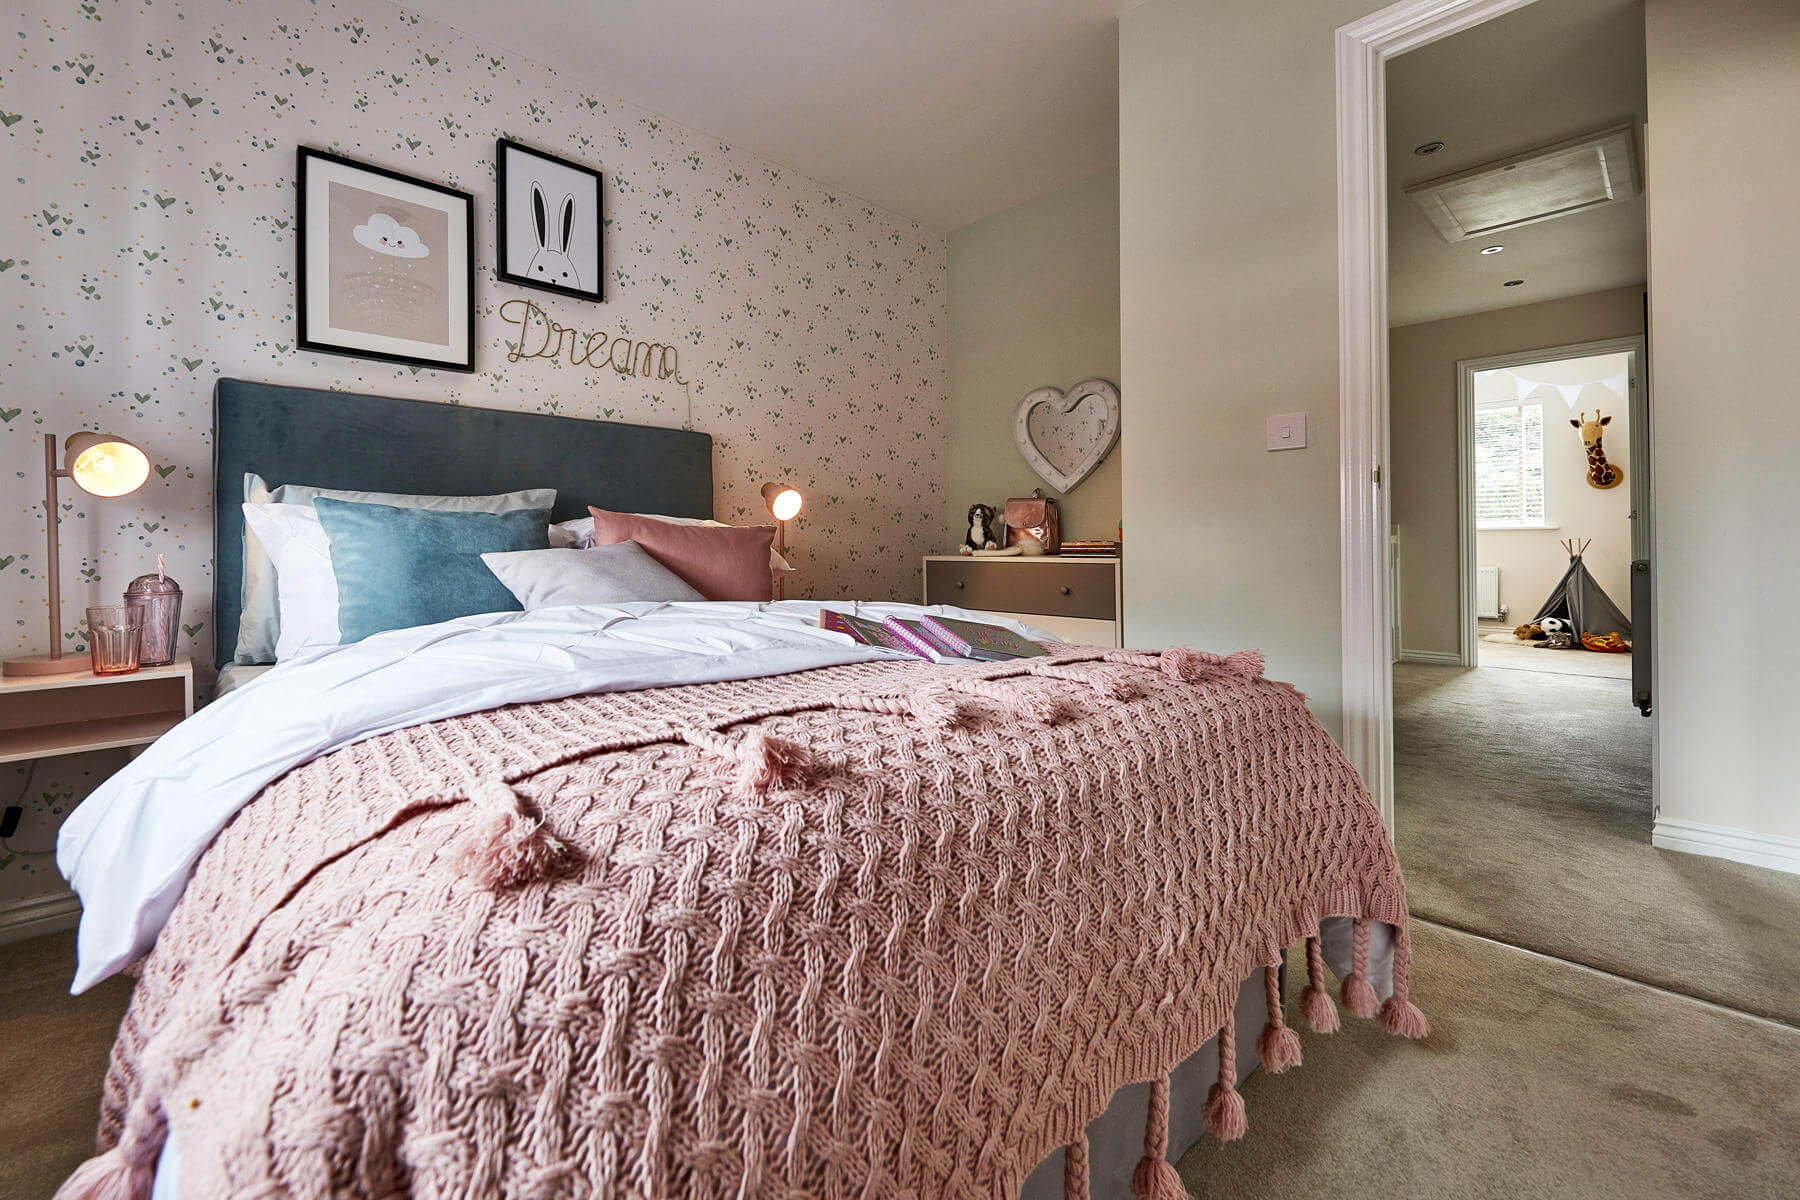 Midford bedroom at Edwalton Chase